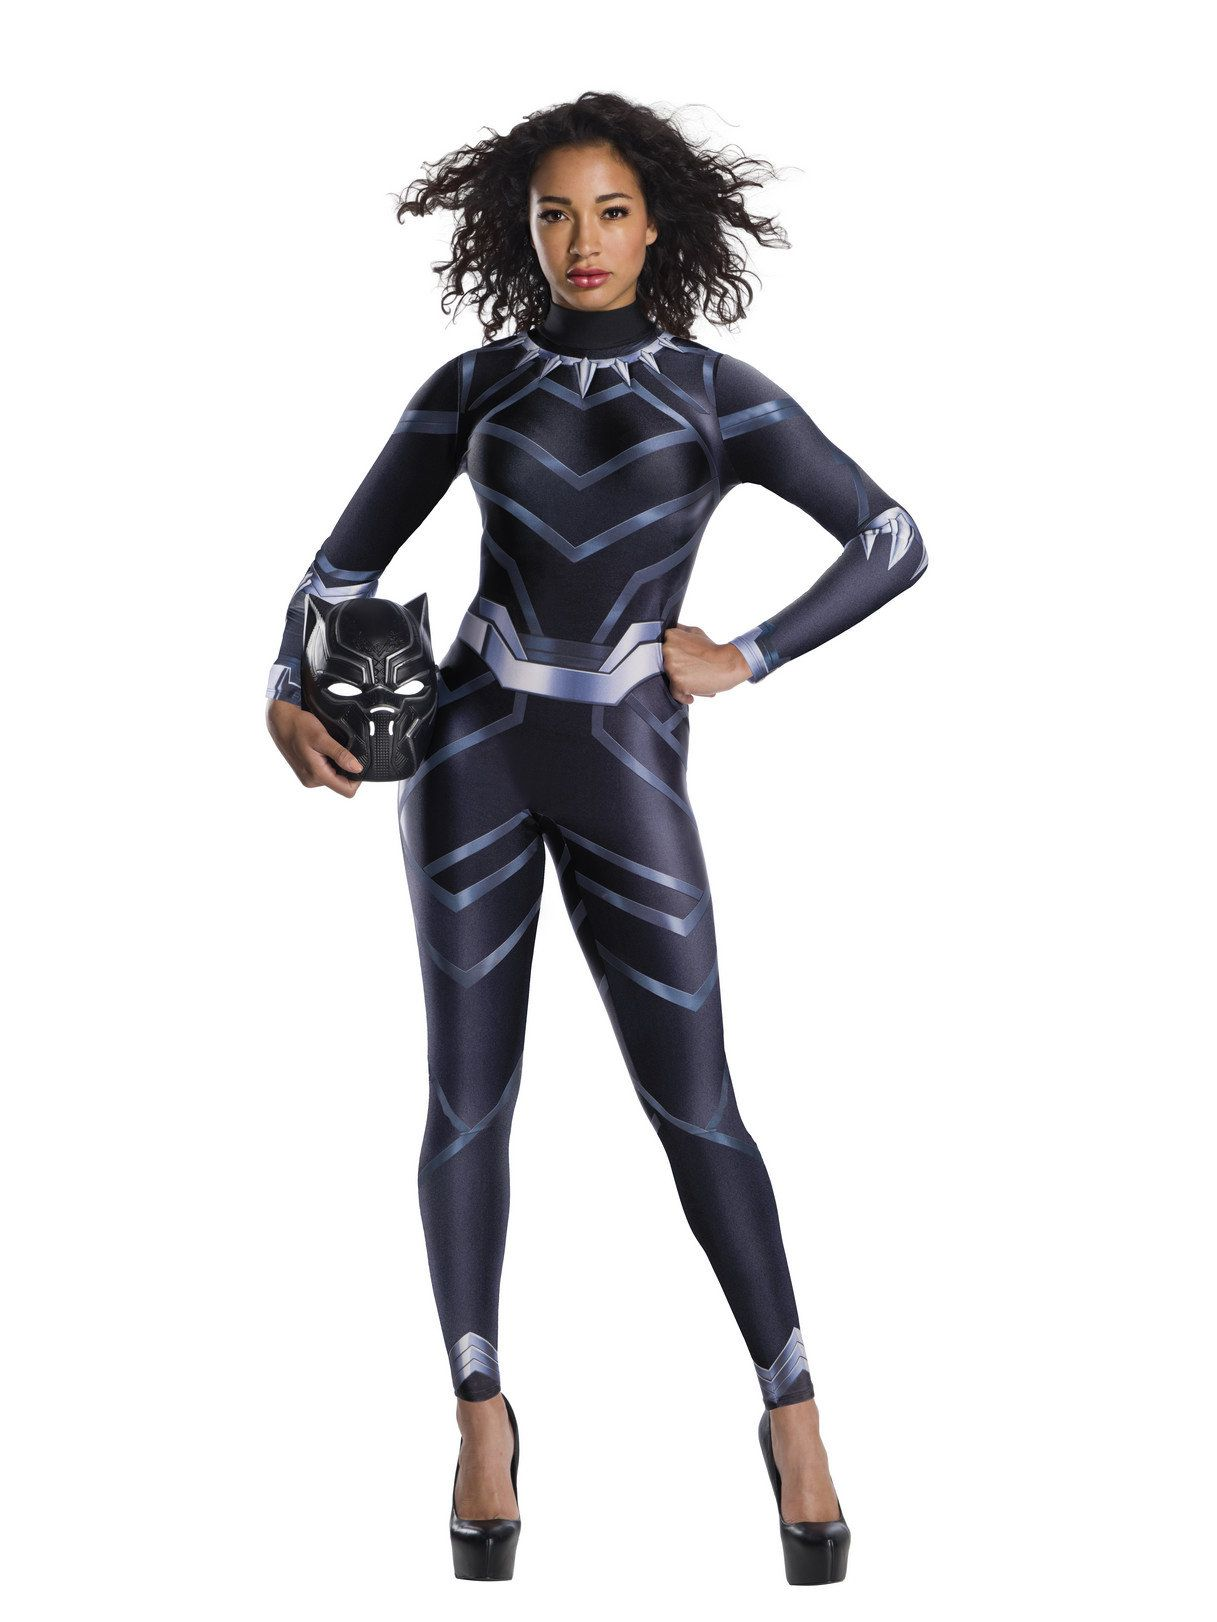 Black Panther Black Panther Costume For Women - Adult -5604